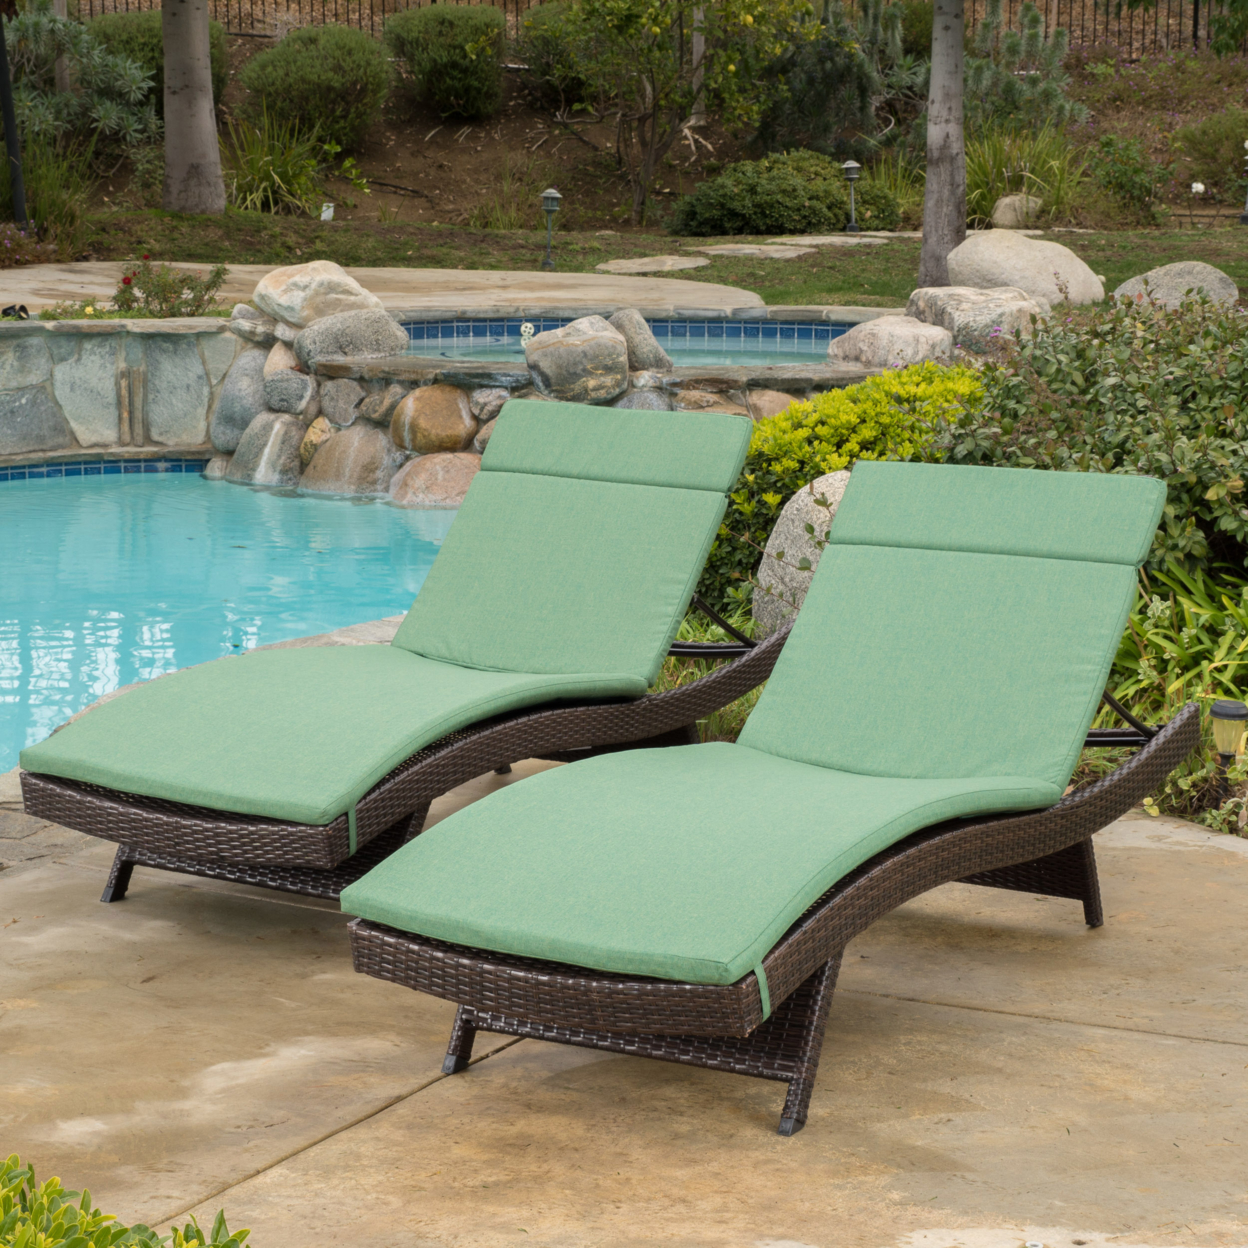 Lakeport Outdoor Adjustable Chaise Lounge Chairs w/ Cushions (set of 2) (4)